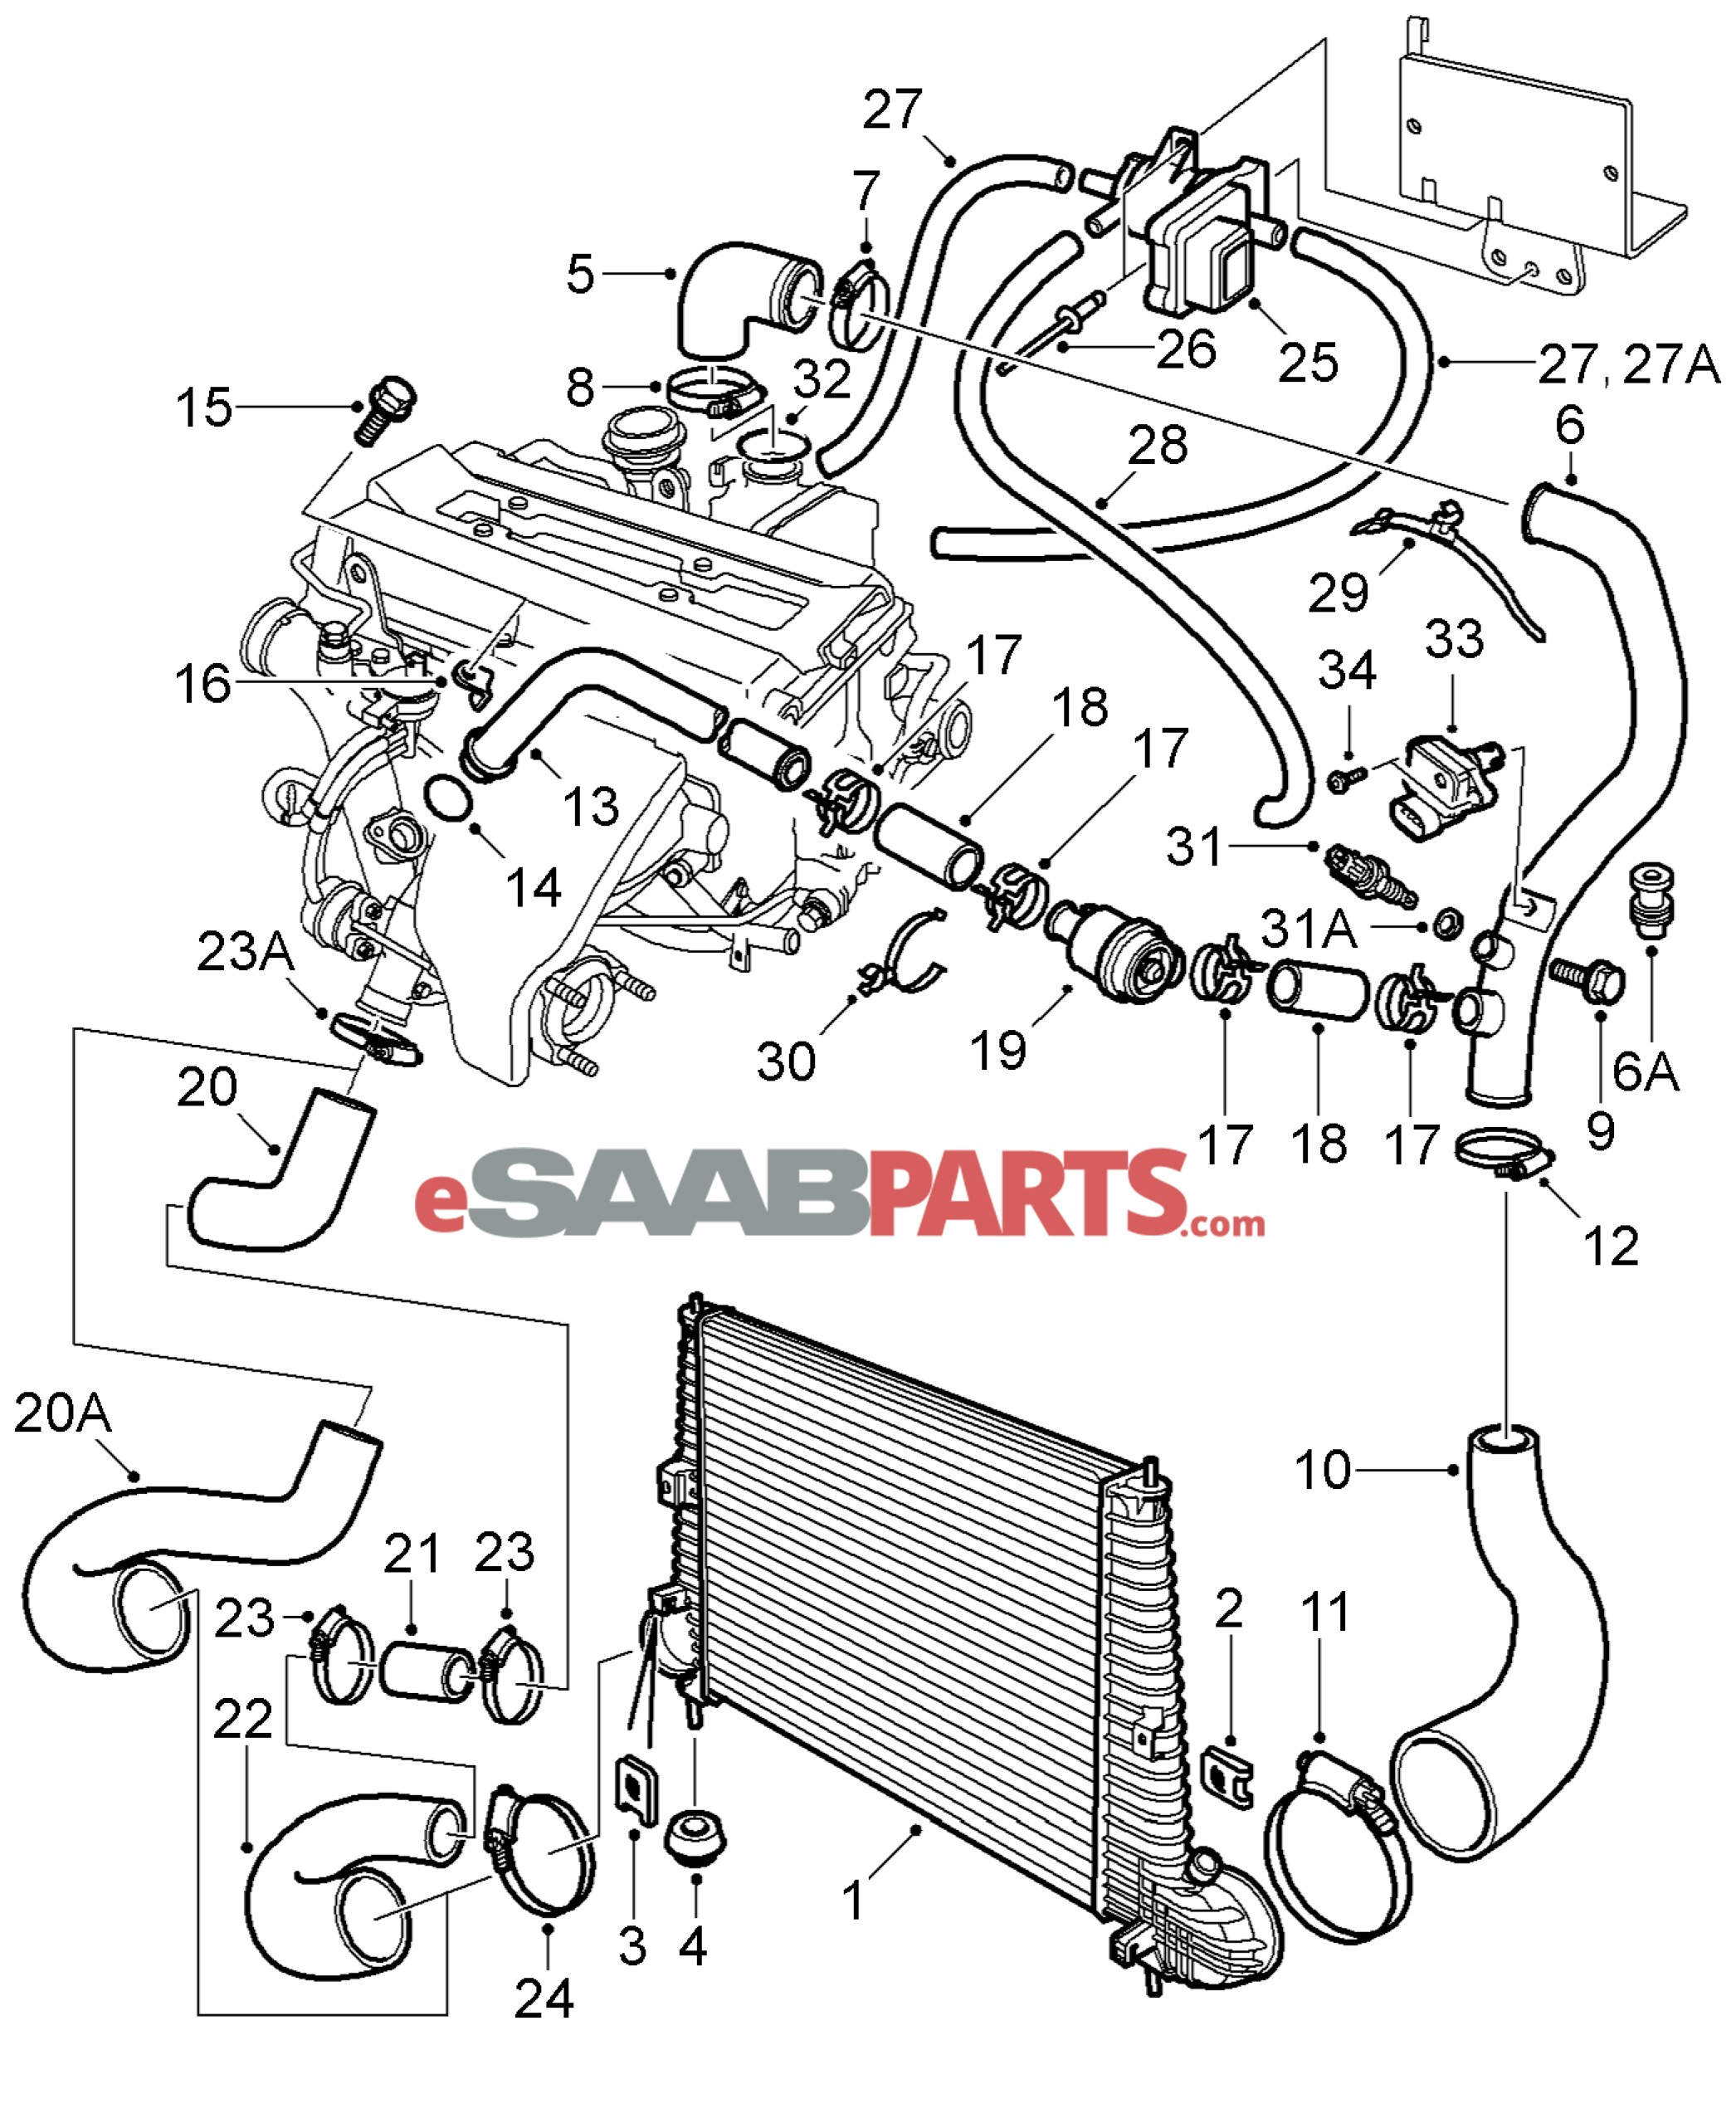 Saab 9 3 Engine Diagram 2000 Saab 9 5 Fuse Box Diagram Saab Wiring Diagrams Instructions Of Saab 9 3 Engine Diagram